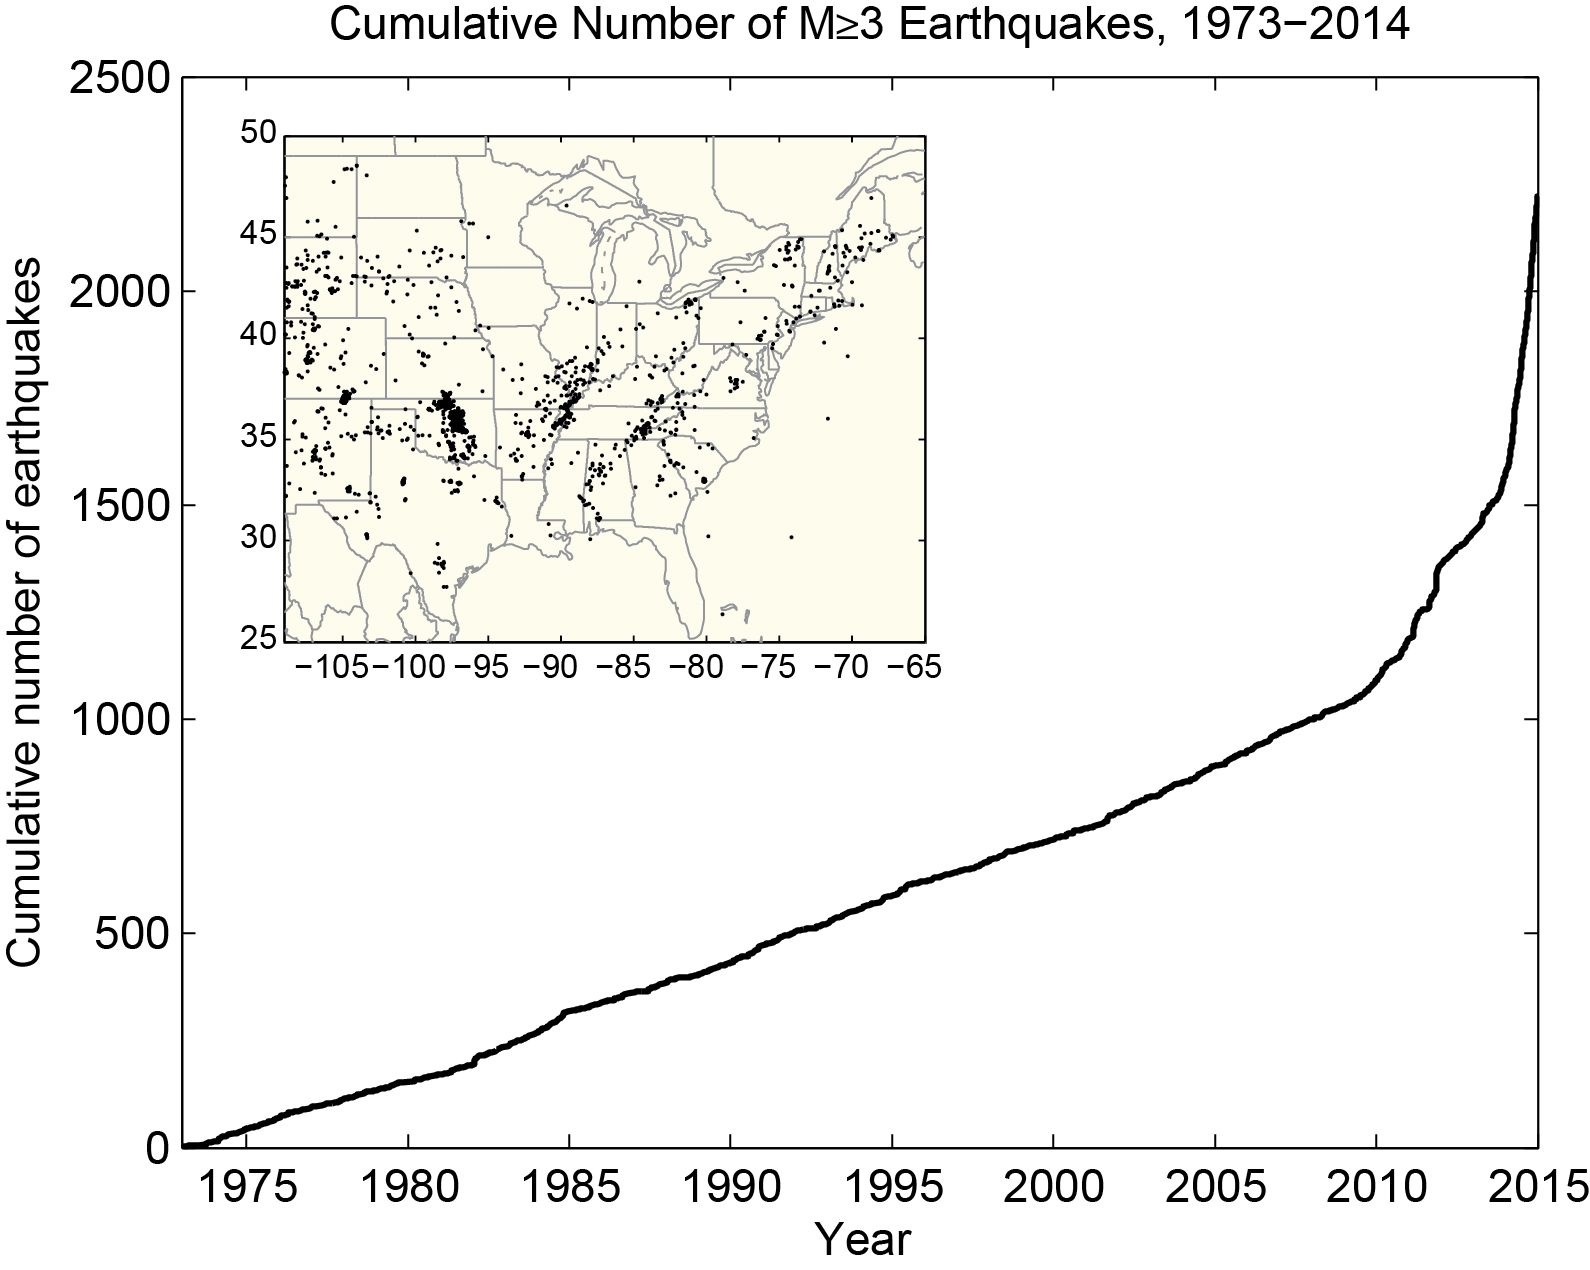 Cumulative number of earthquakes with a magnitude of 3.0 or larger in the central and eastern United States, 1973-2014. The rate of earthquakes began to increase starting around 2009 and accelerated in 2013-2014.